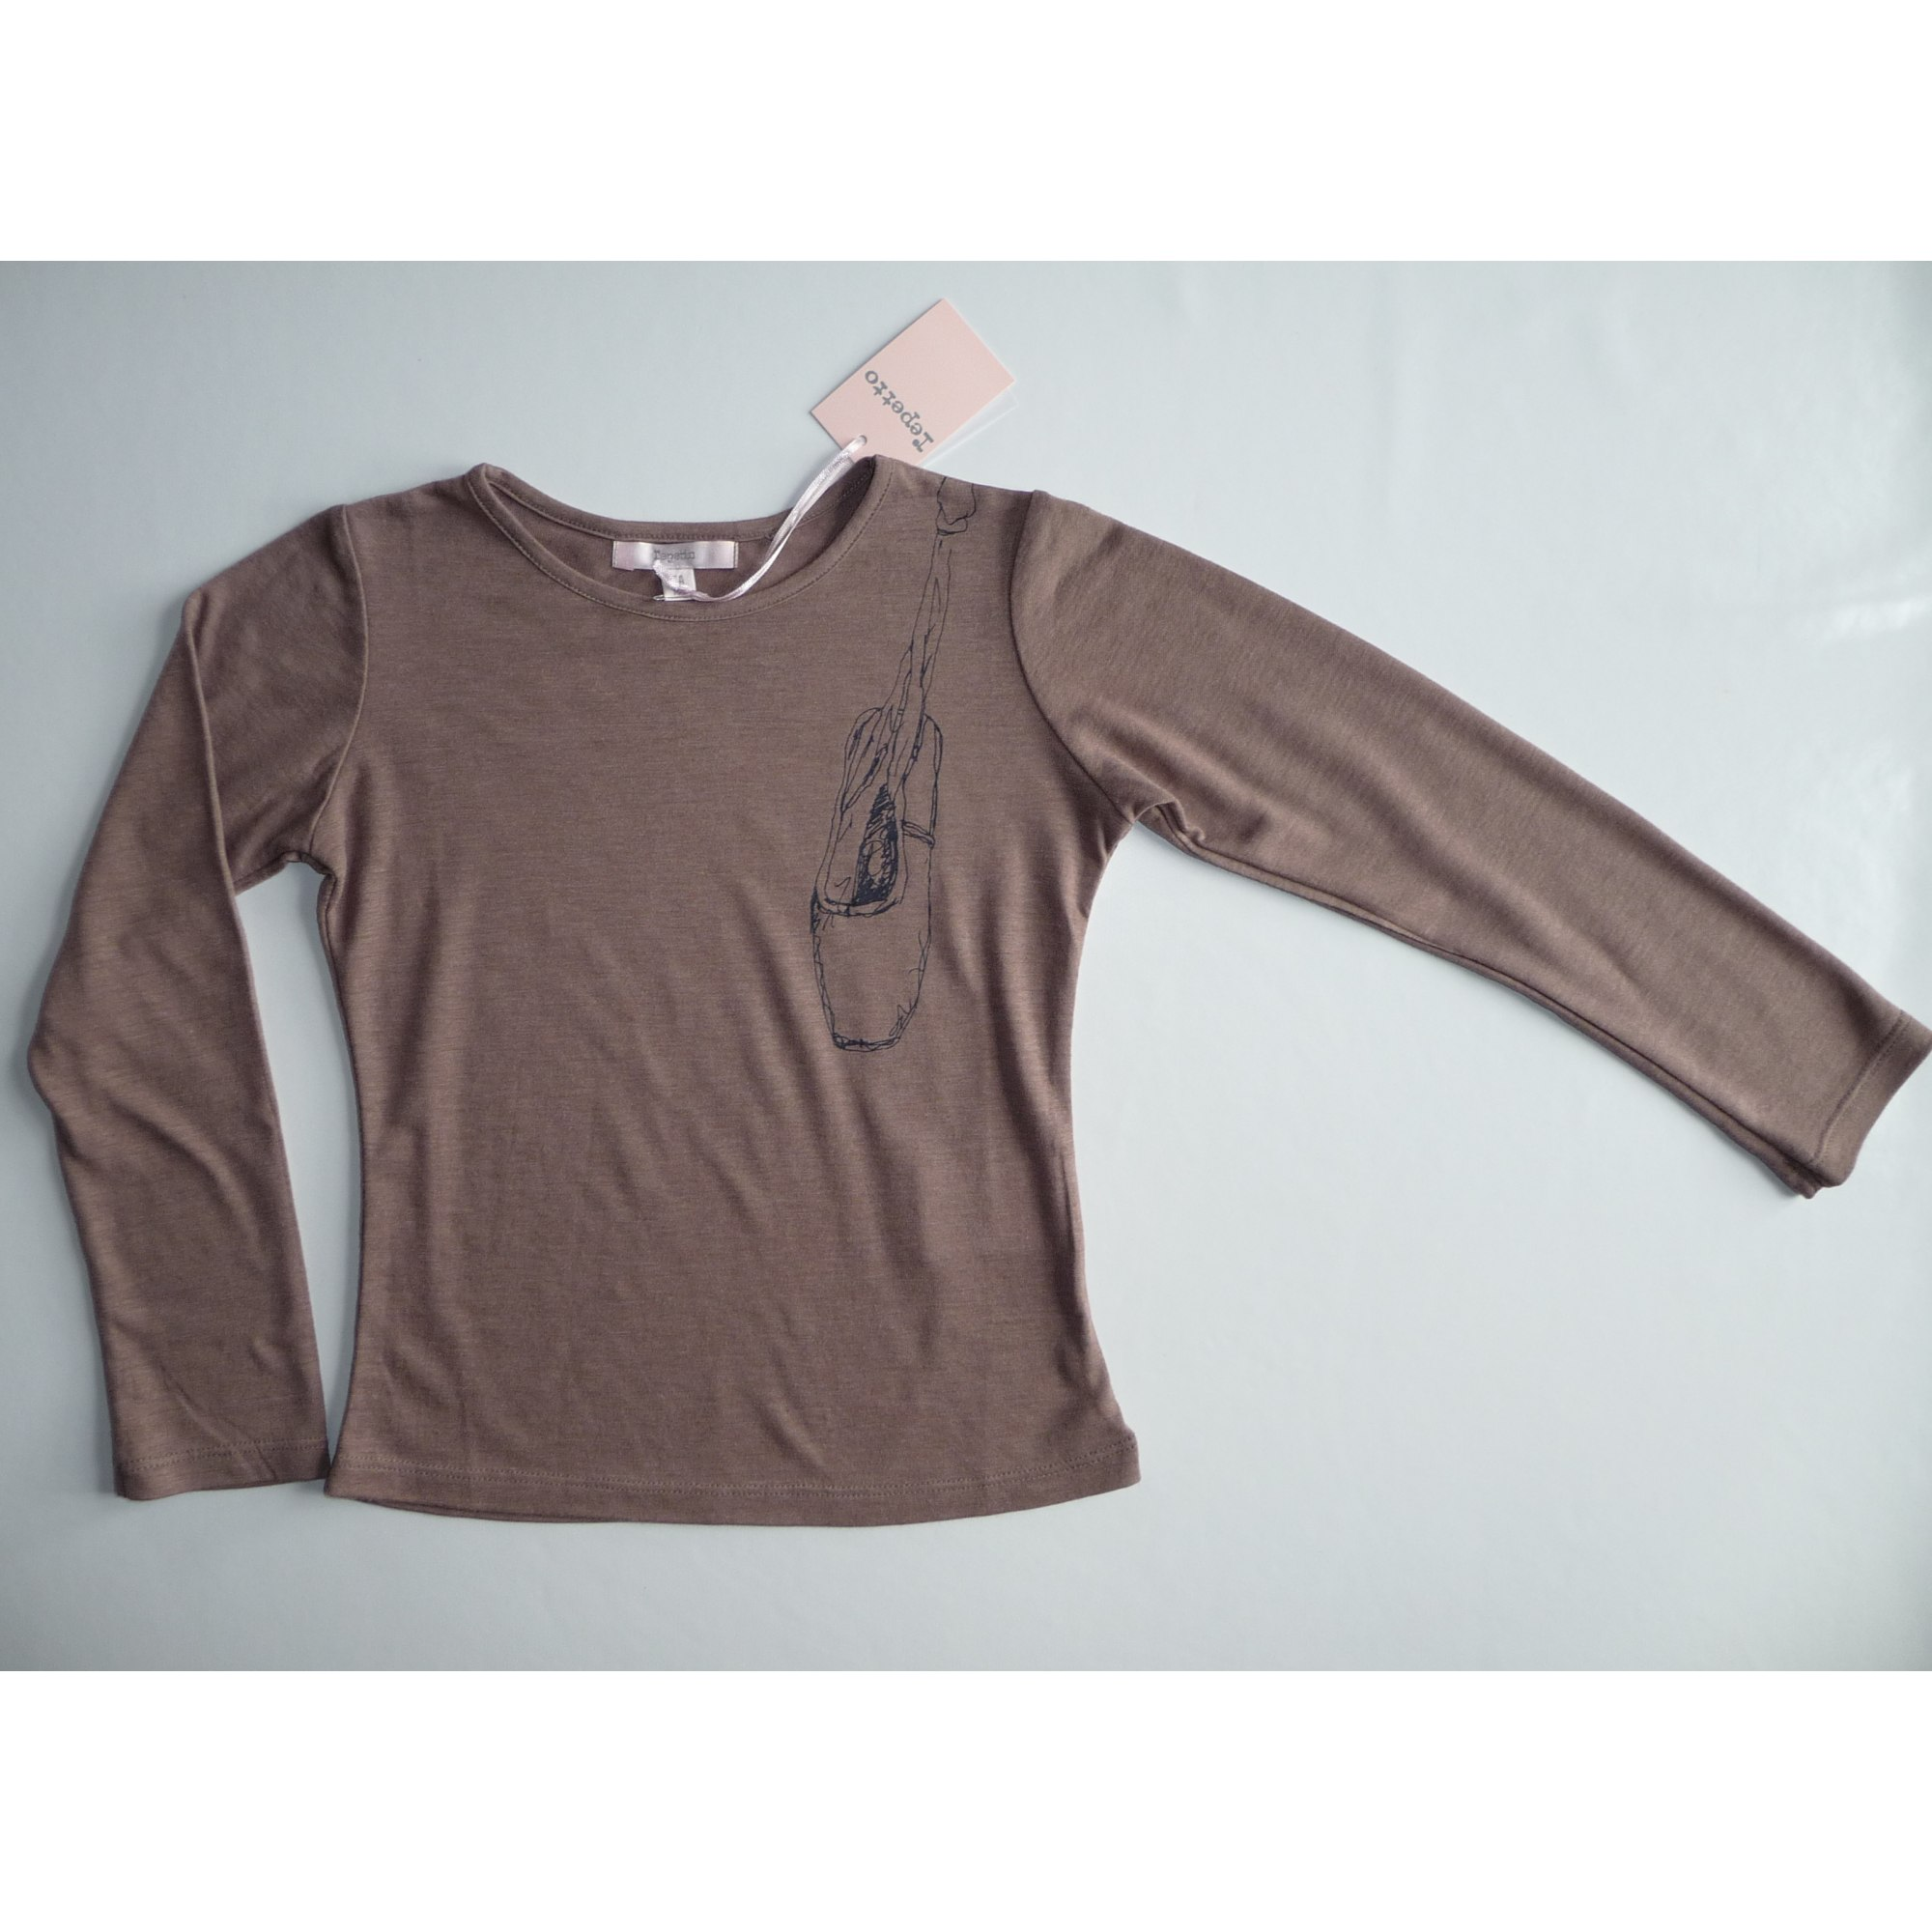 Top, Tee-shirt REPETTO Marron